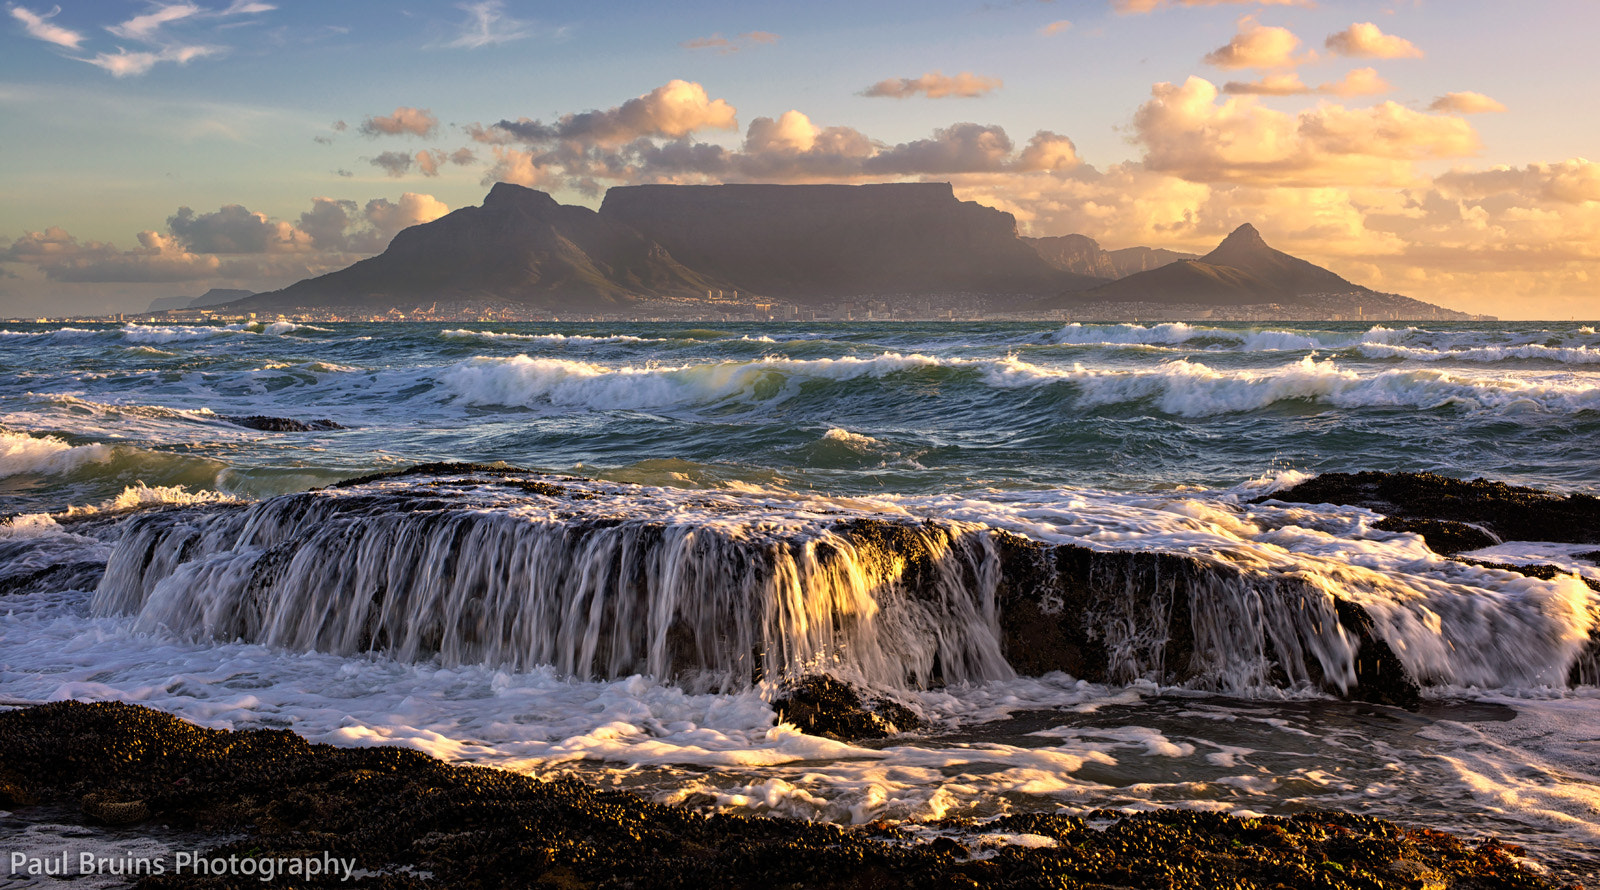 Photograph Table Mountain at 50mm by Paul Bruins on 500px